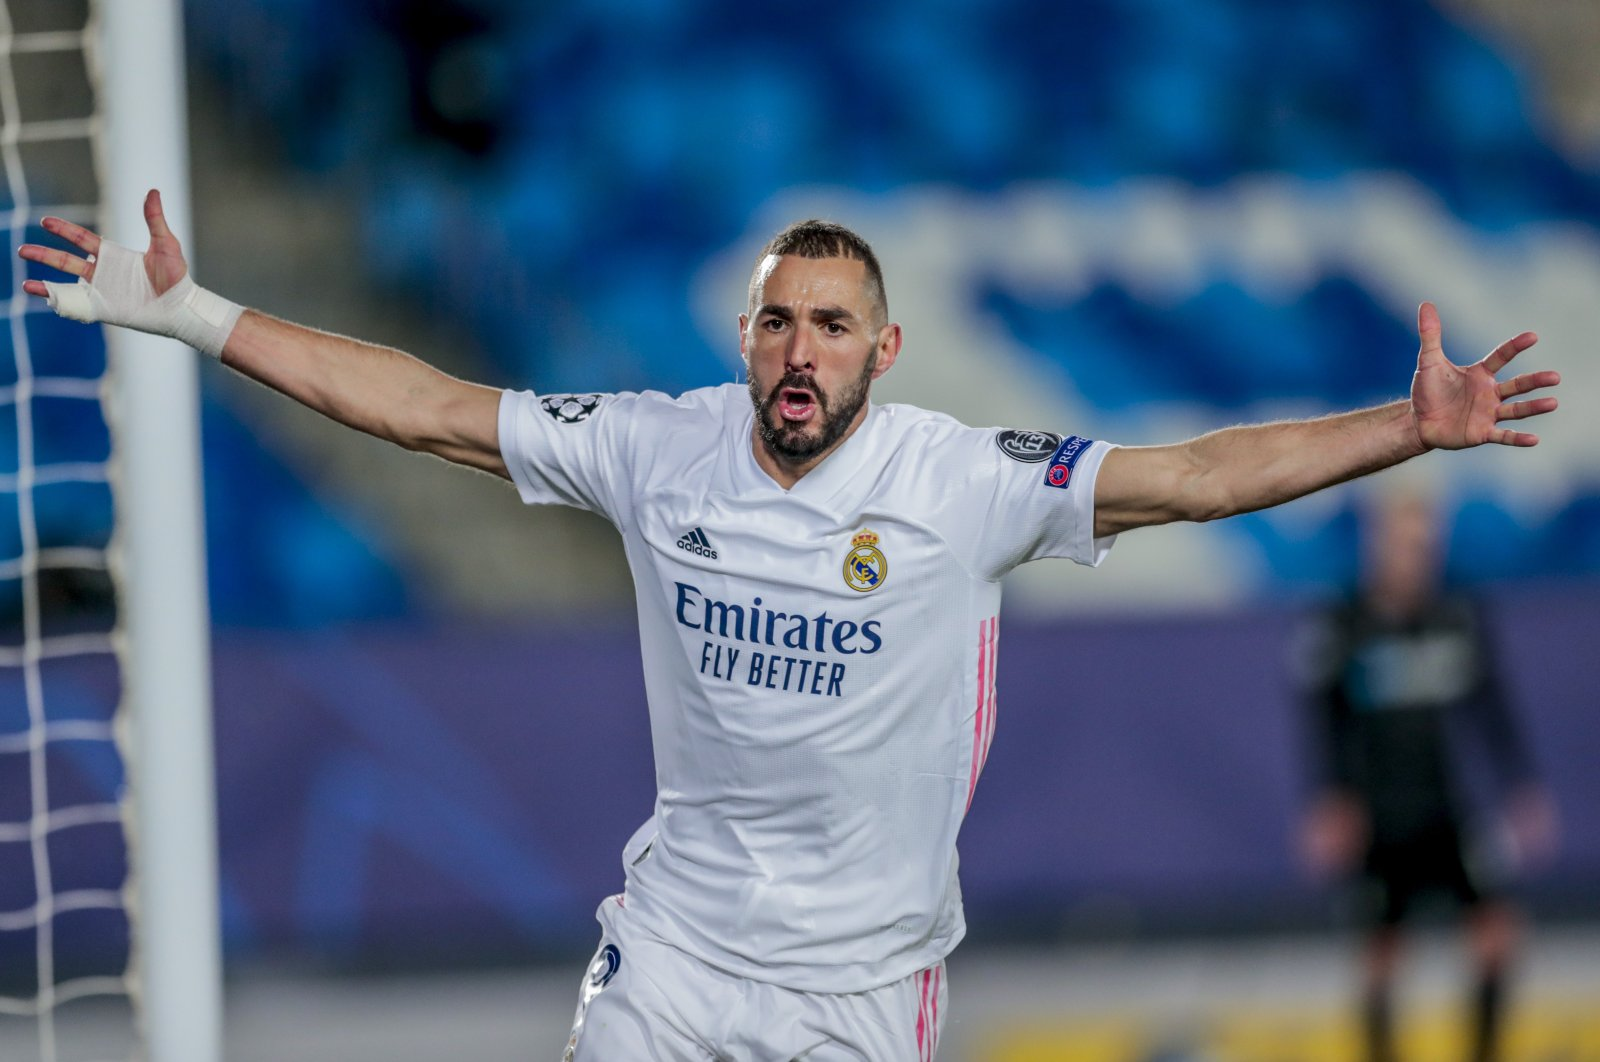 Real Madrid's Karim Benzema celebrates after scoring the opening goal during the Champions League group B football match between Real Madrid and Borussia Monchengladbach at the Alfredo Di Stefano stadium in Madrid, Spain, Dec. 9, 2020. (AP Photo)